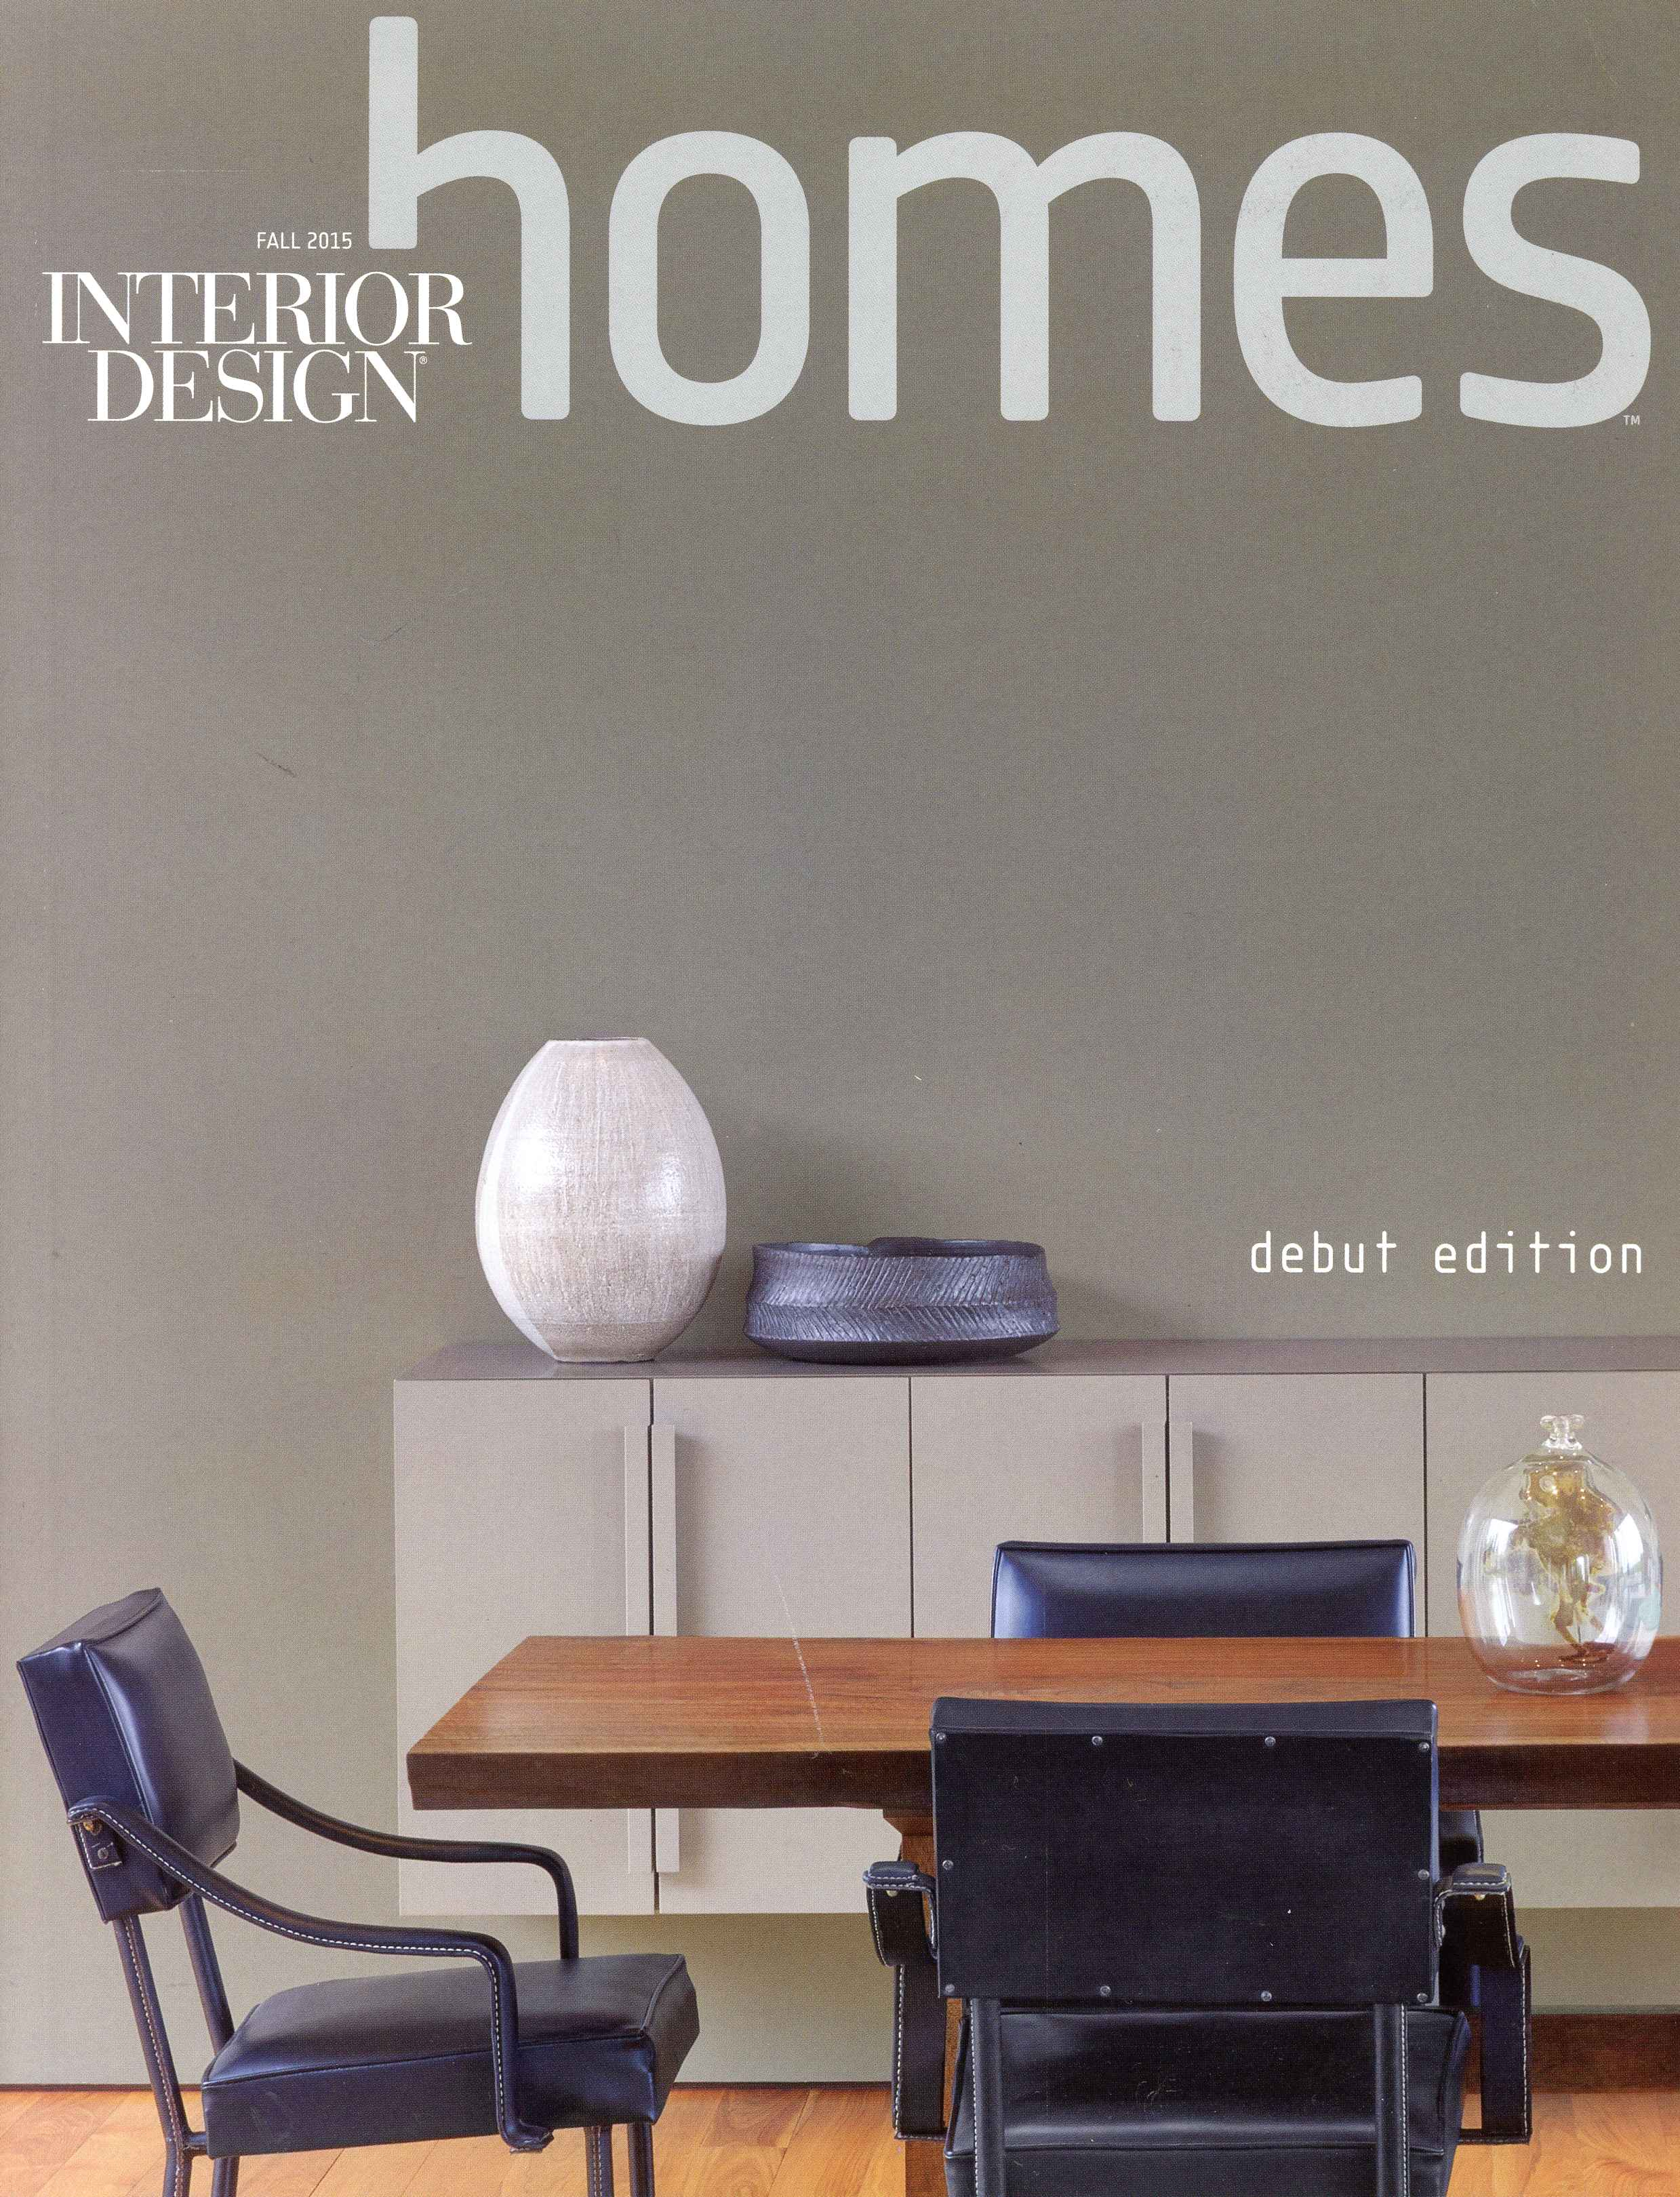 Interior Design Homes_Fall 15_Cover.jpg